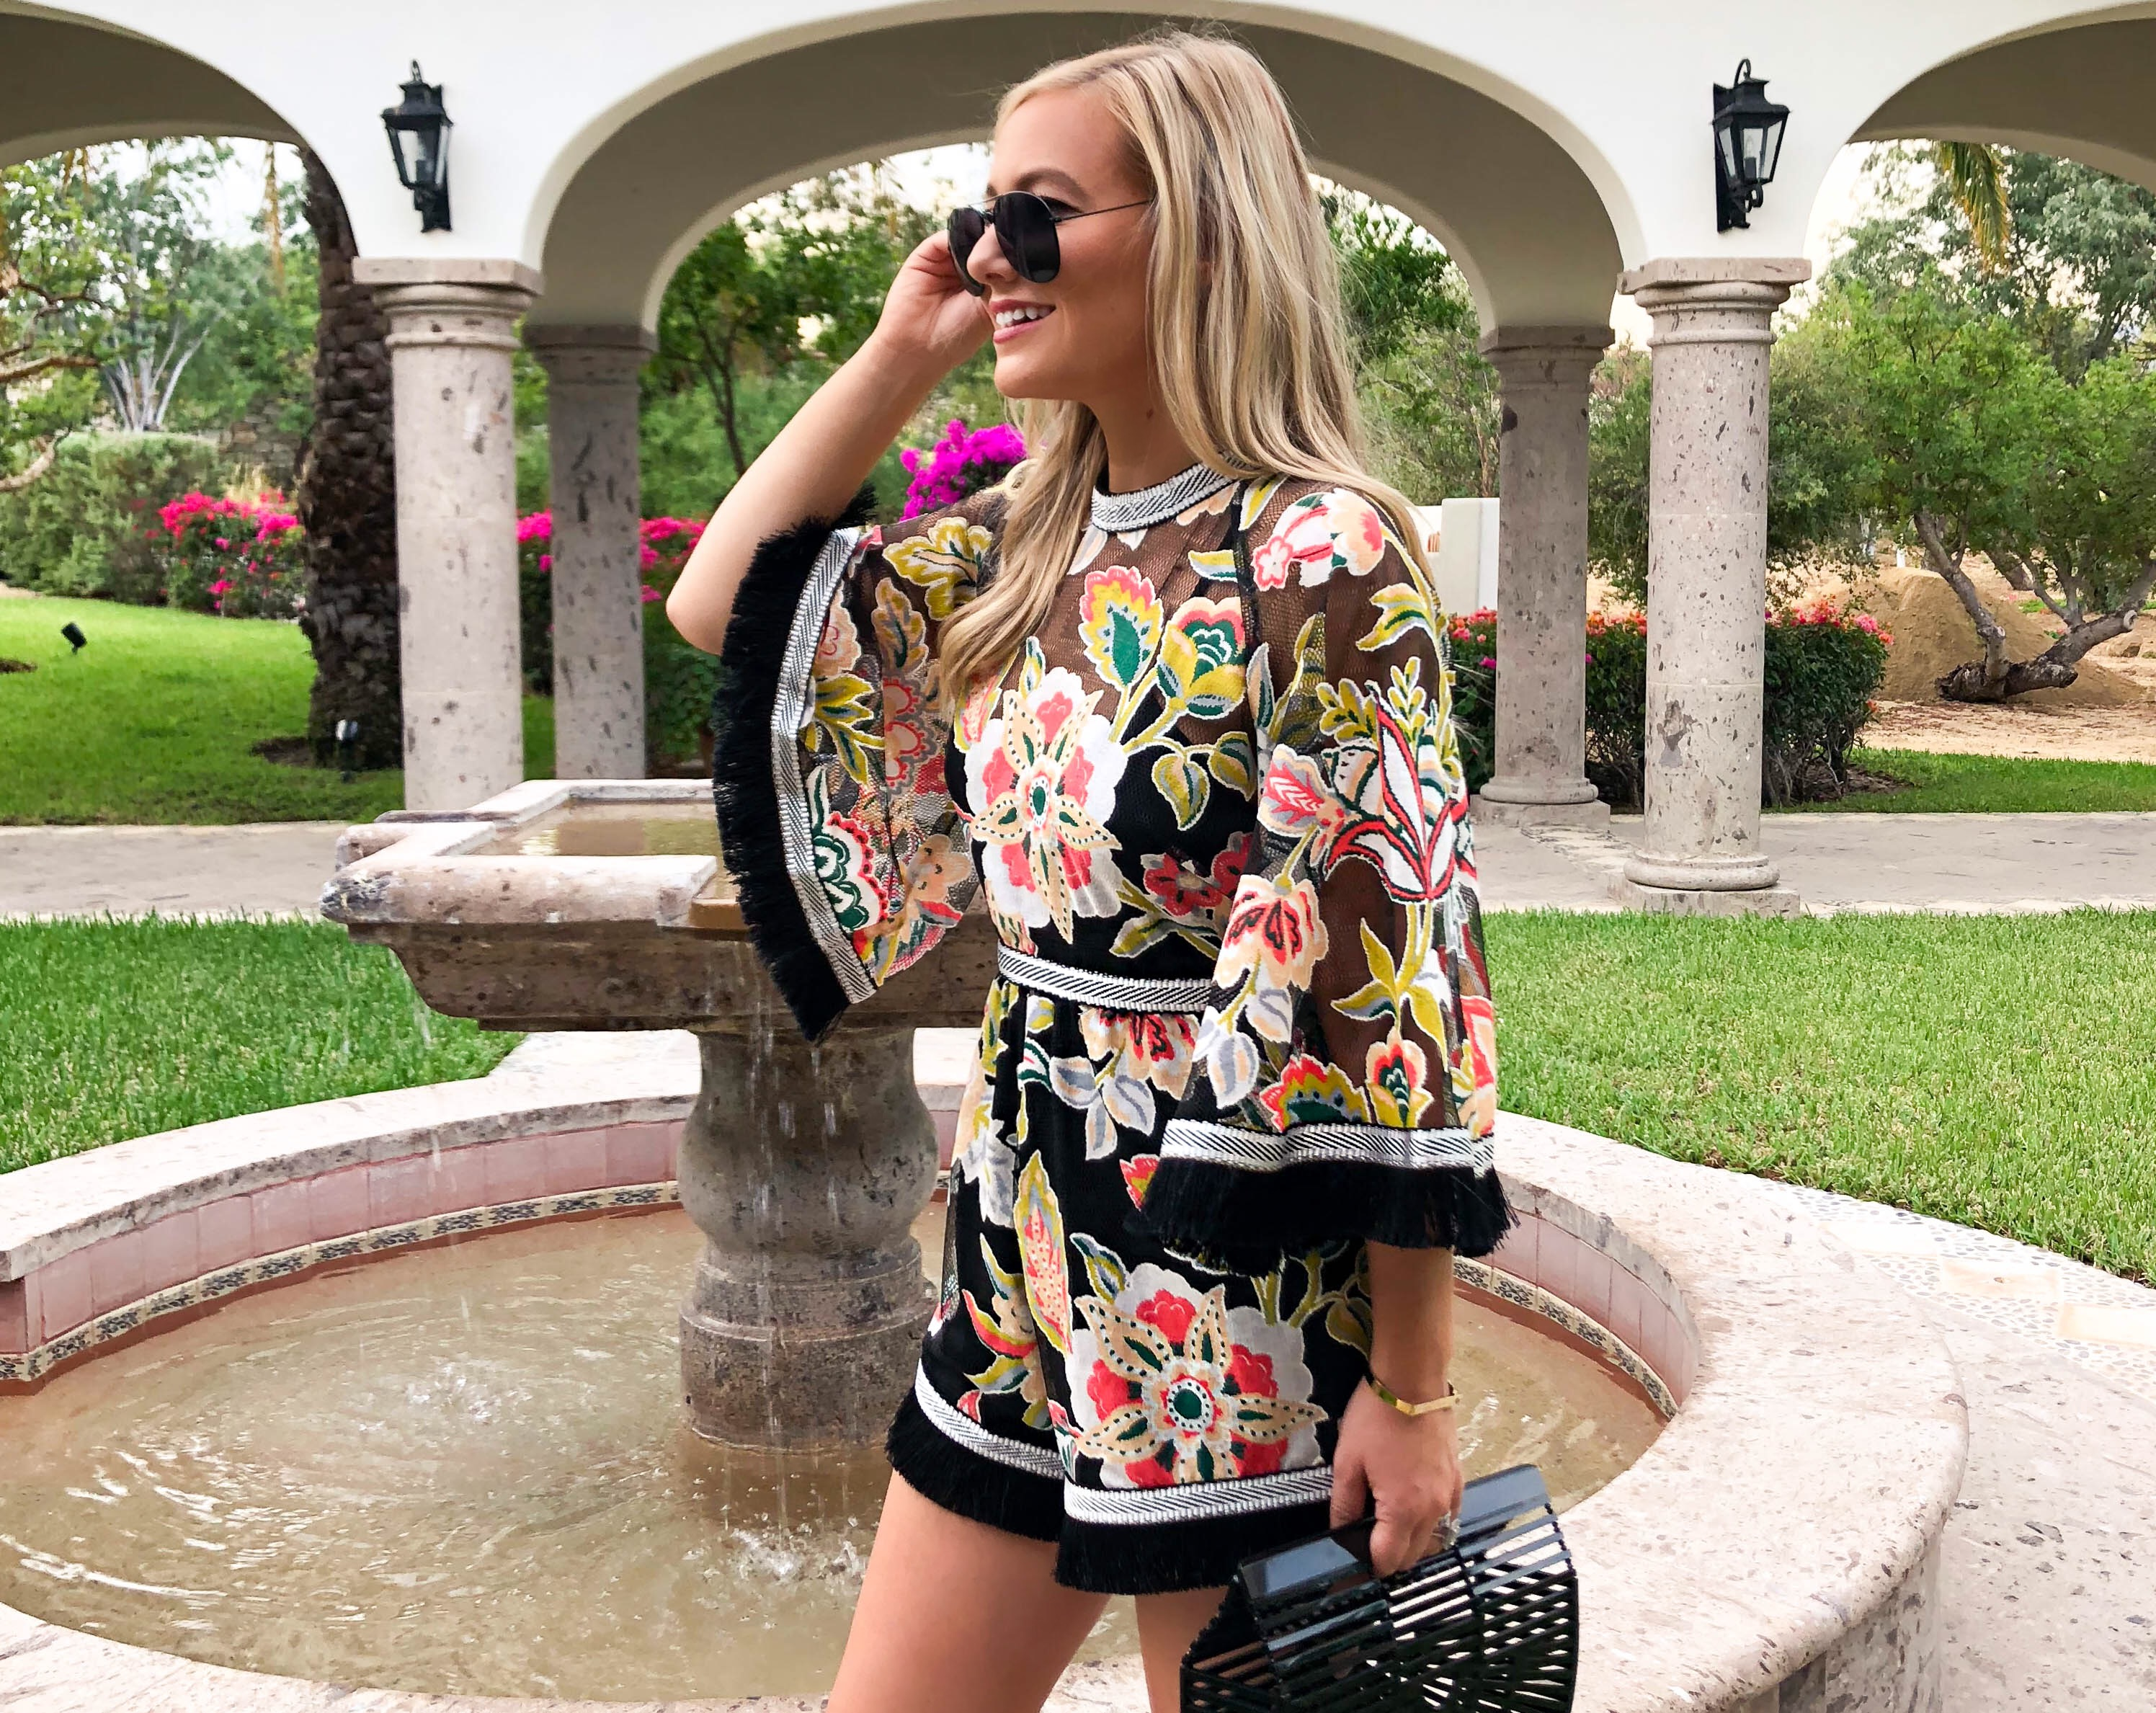 Alice McCall Romper, Colorful Romper, Shopbop Romper, Cult Gaia Bag, Cult Gaia Arc Bag, Ray Ban Sunglasses, Mexico, Travel Blogger, Printed Romper, Romper with tassels